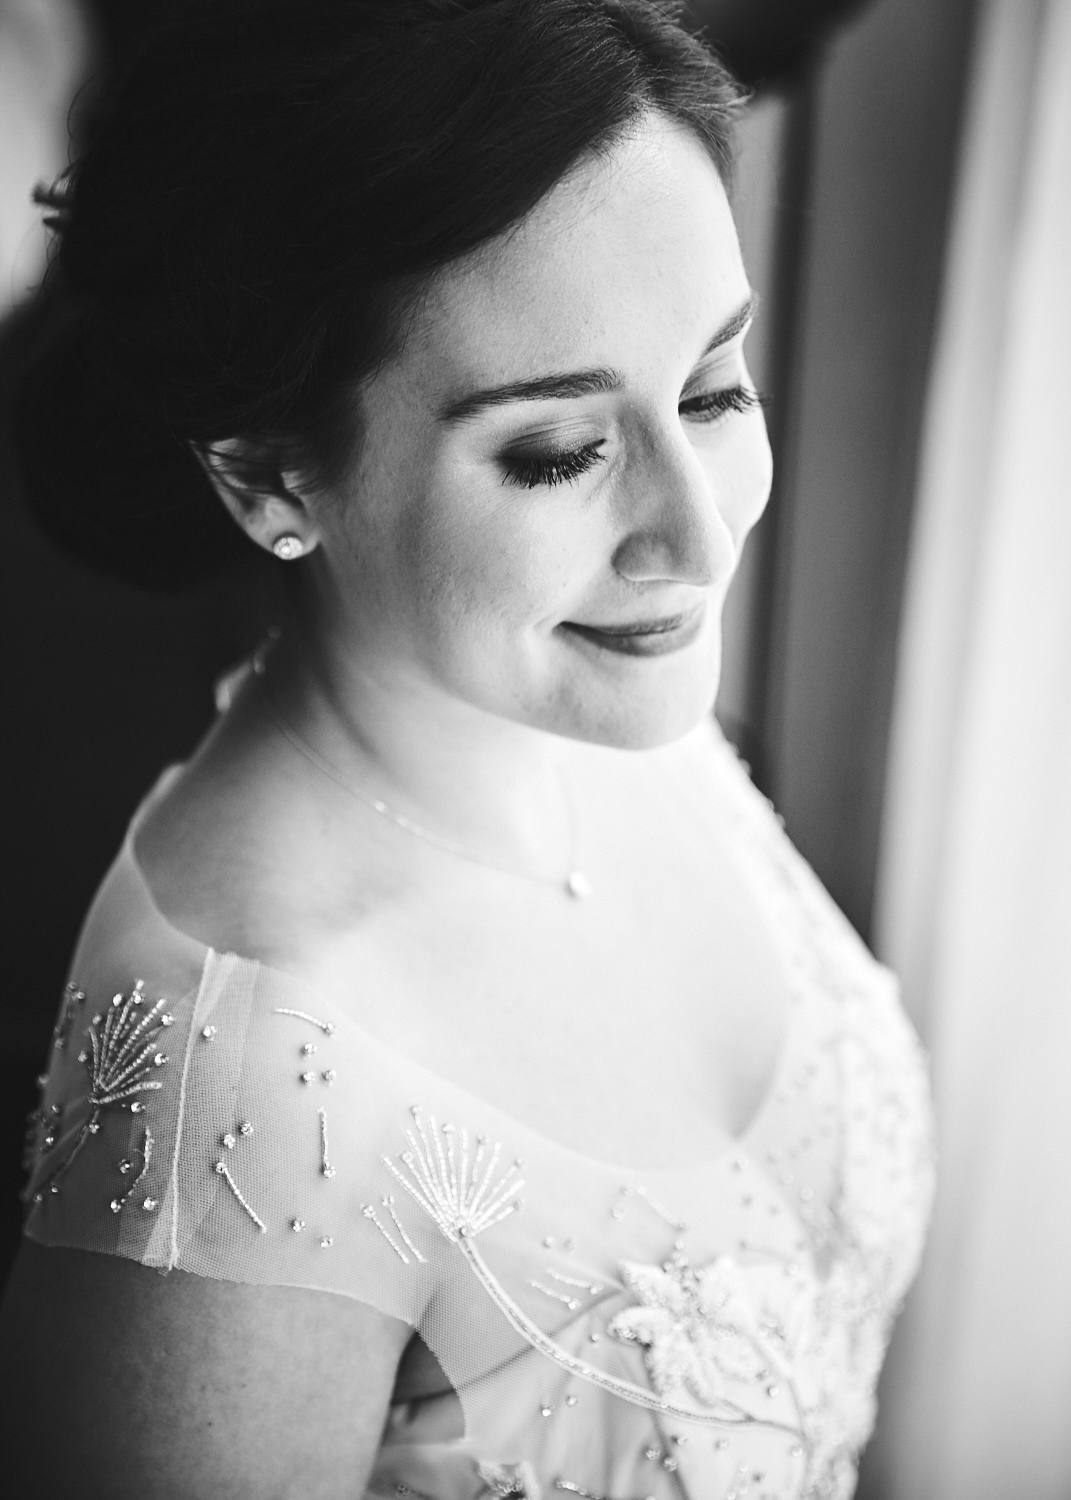 161022_A&B_26BridgeStWedding_By_BriJohnsonWeddings_0022.jpg